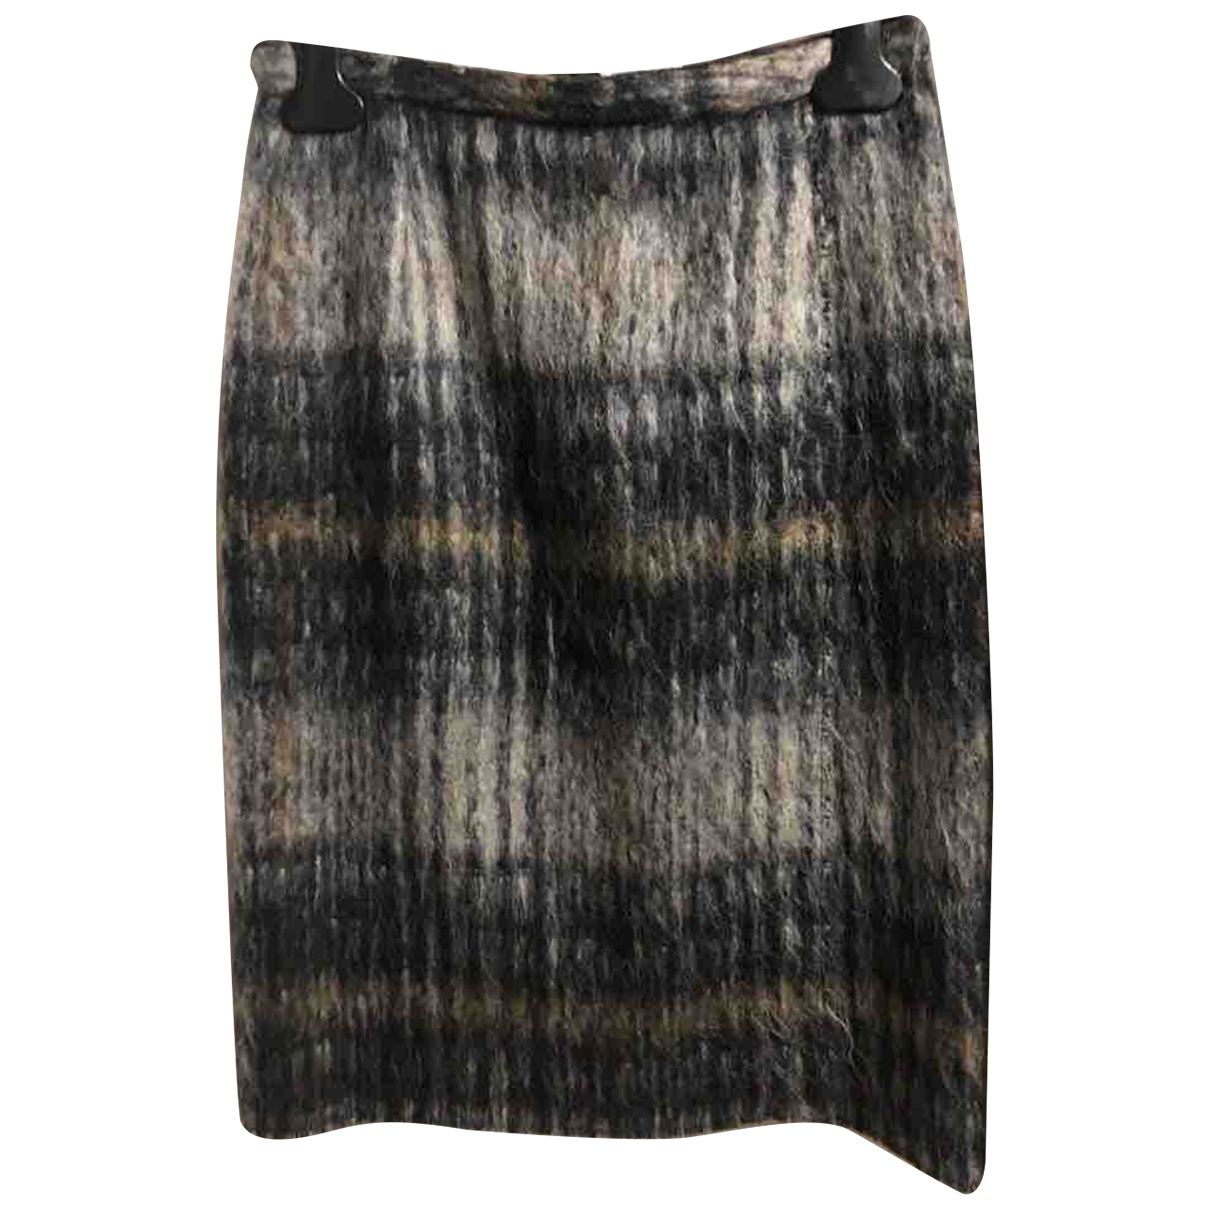 Dolce & Gabbana \N Multicolour Wool skirt for Women 38 IT